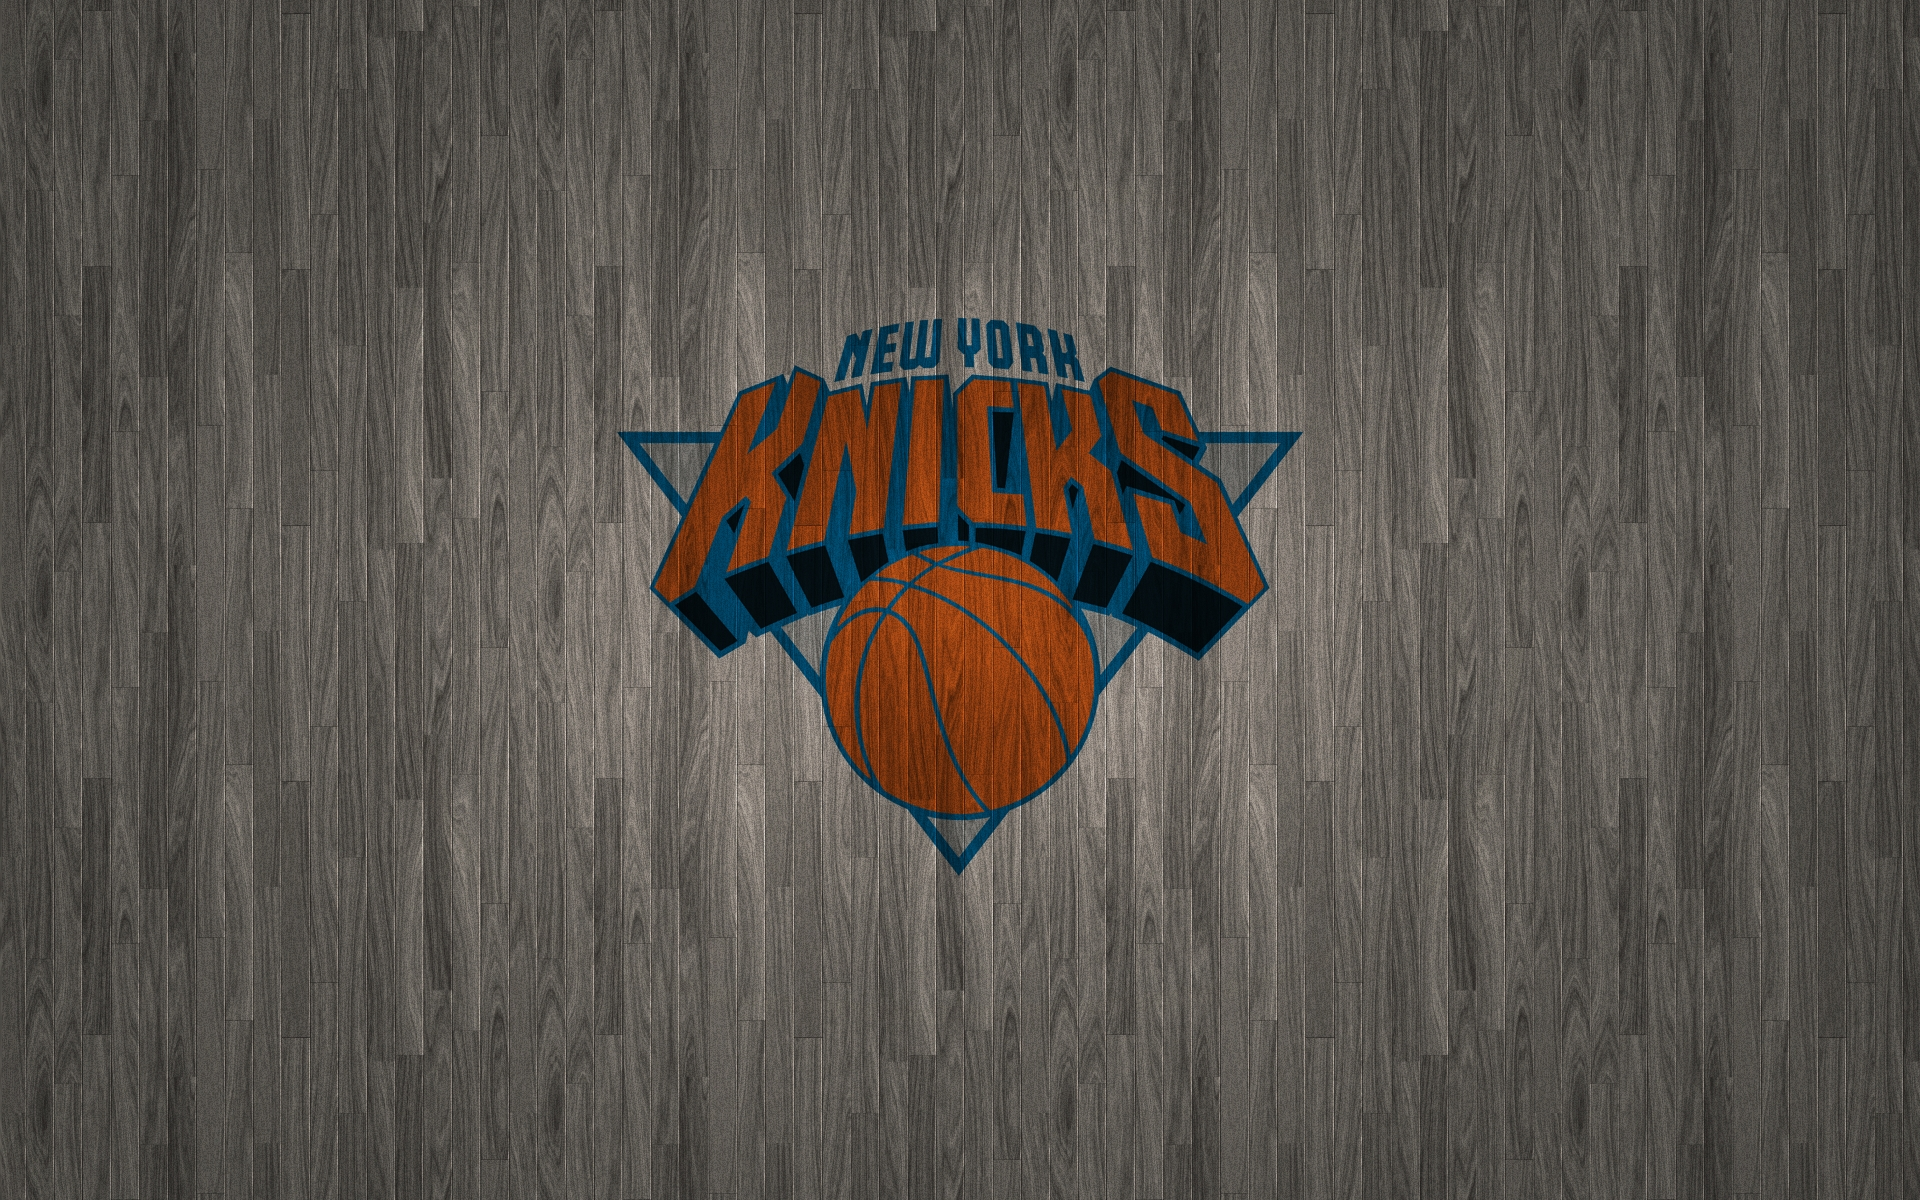 a5fb7cfad03 New York Nicks wallpaper